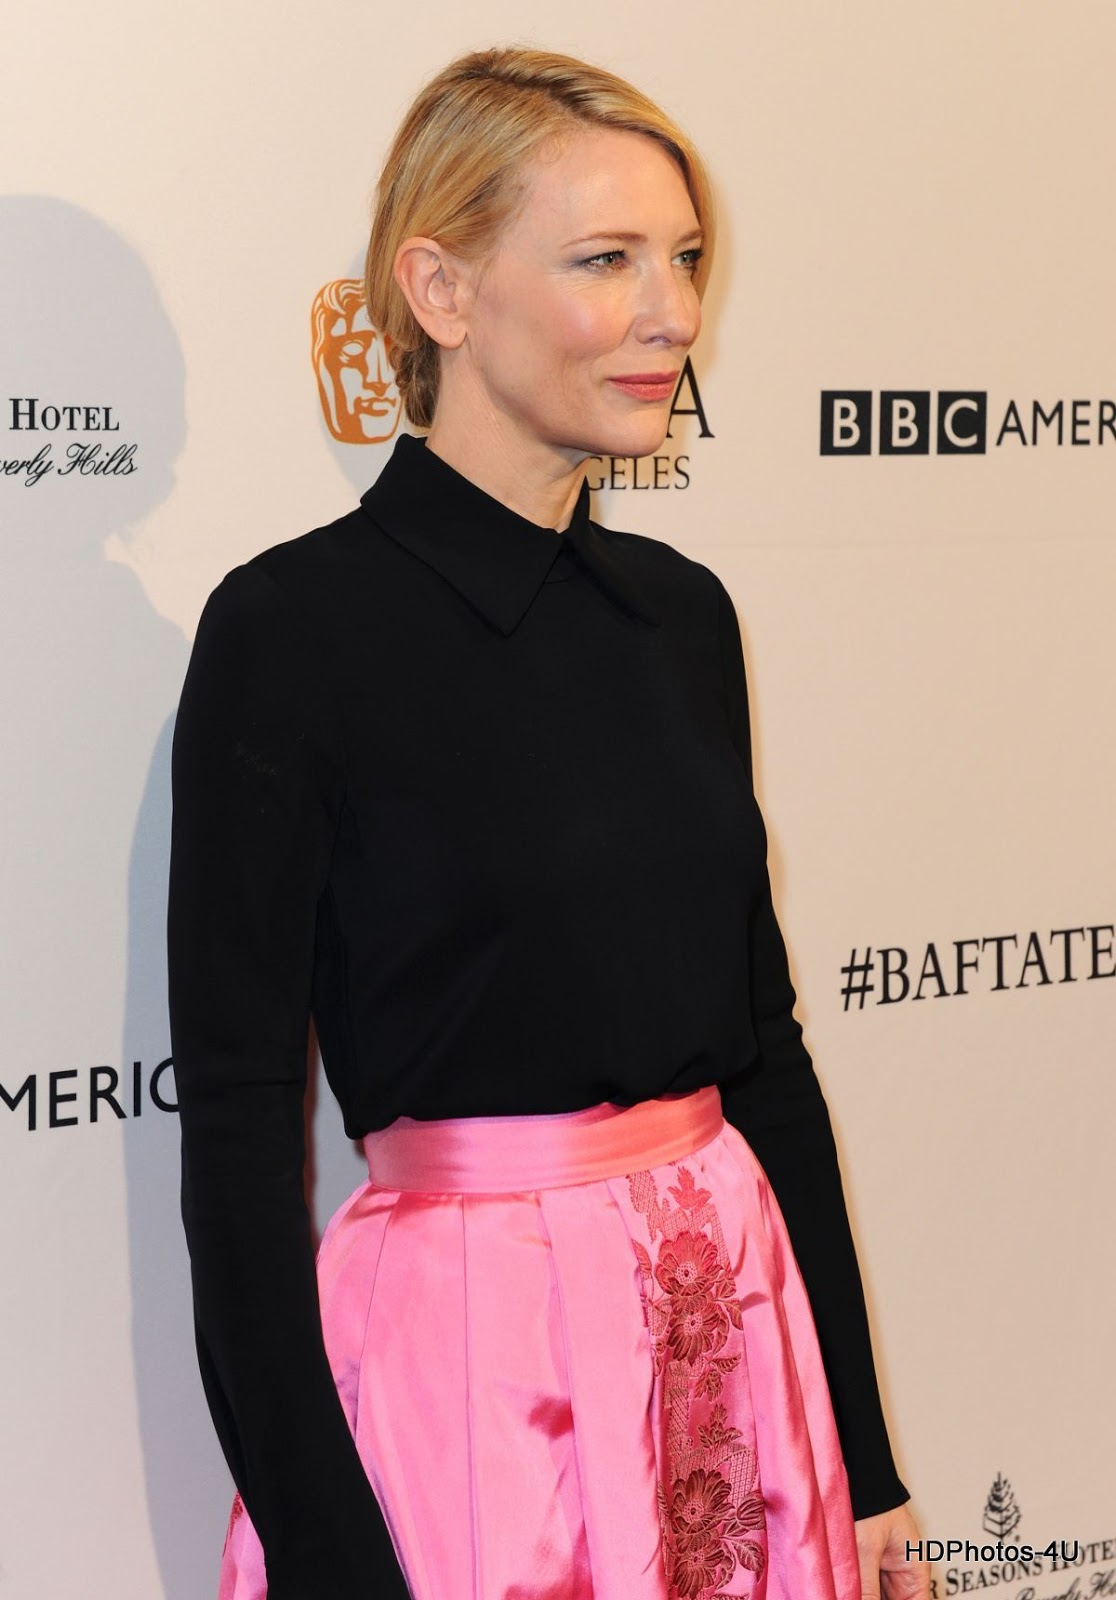 Full HQ Photos of Cate Blanchett at BAFTA Los Angeles Awards Season Tea in Los Angeles